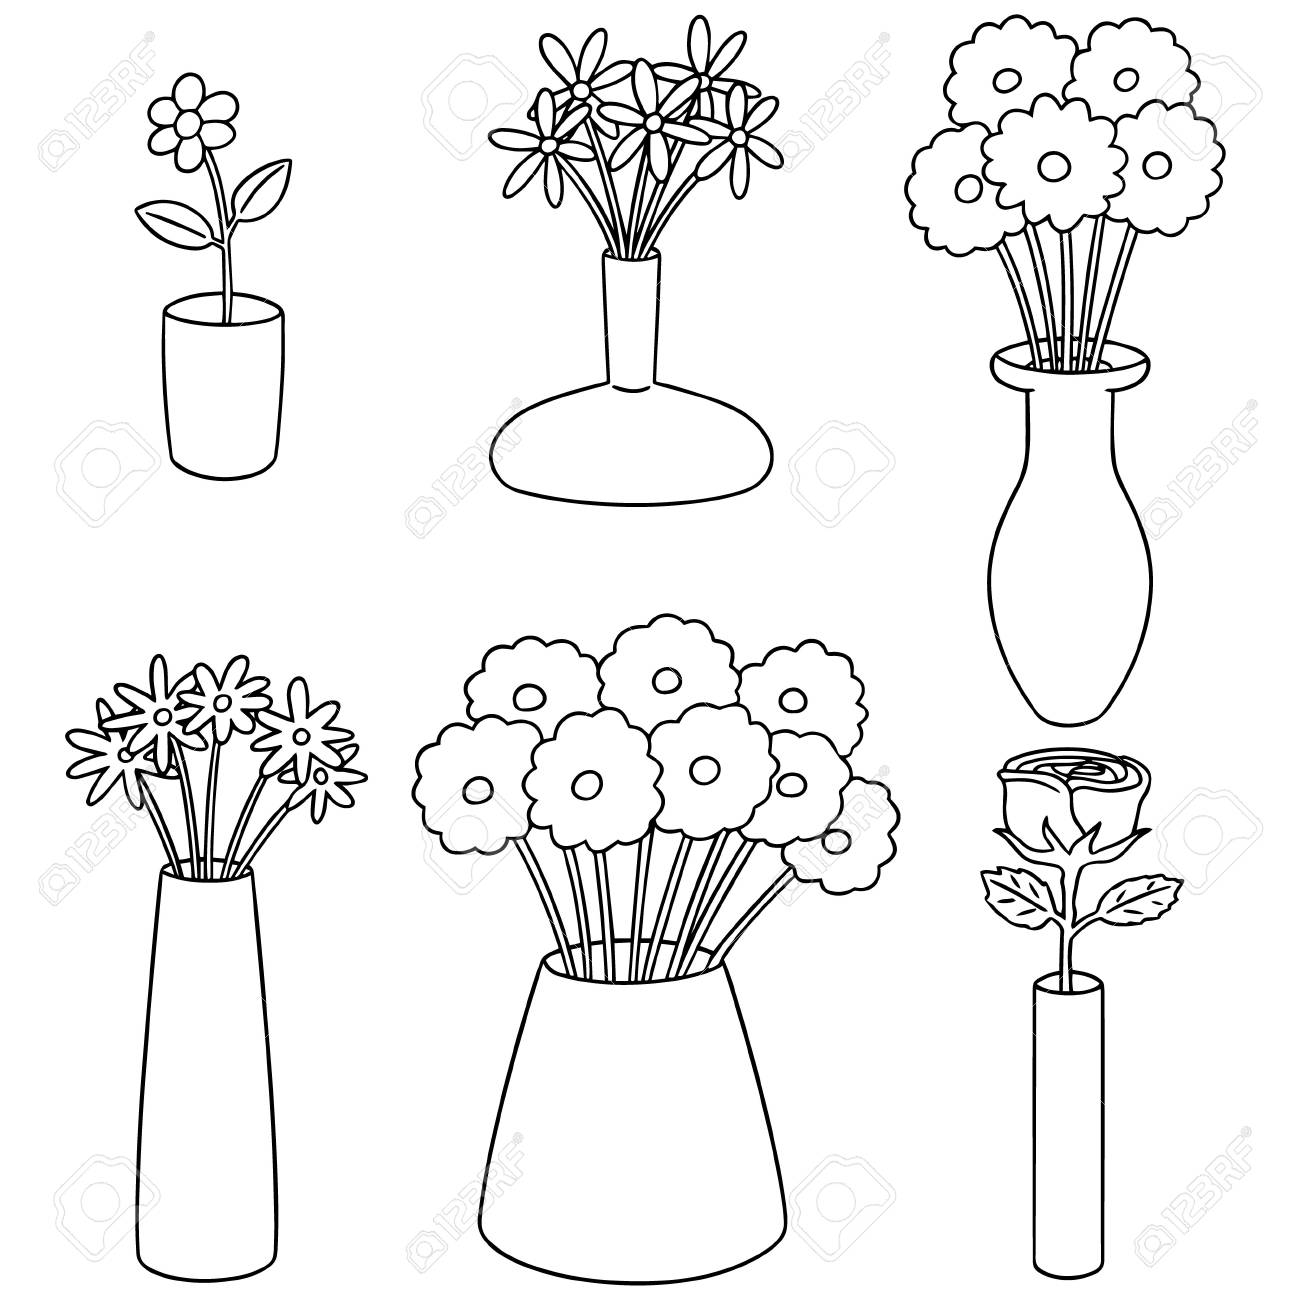 Vector Set Of Flower Vase Icon On White Background Vector Illustration Royalty Free Cliparts Vectors And Stock Illustration Image 89222601